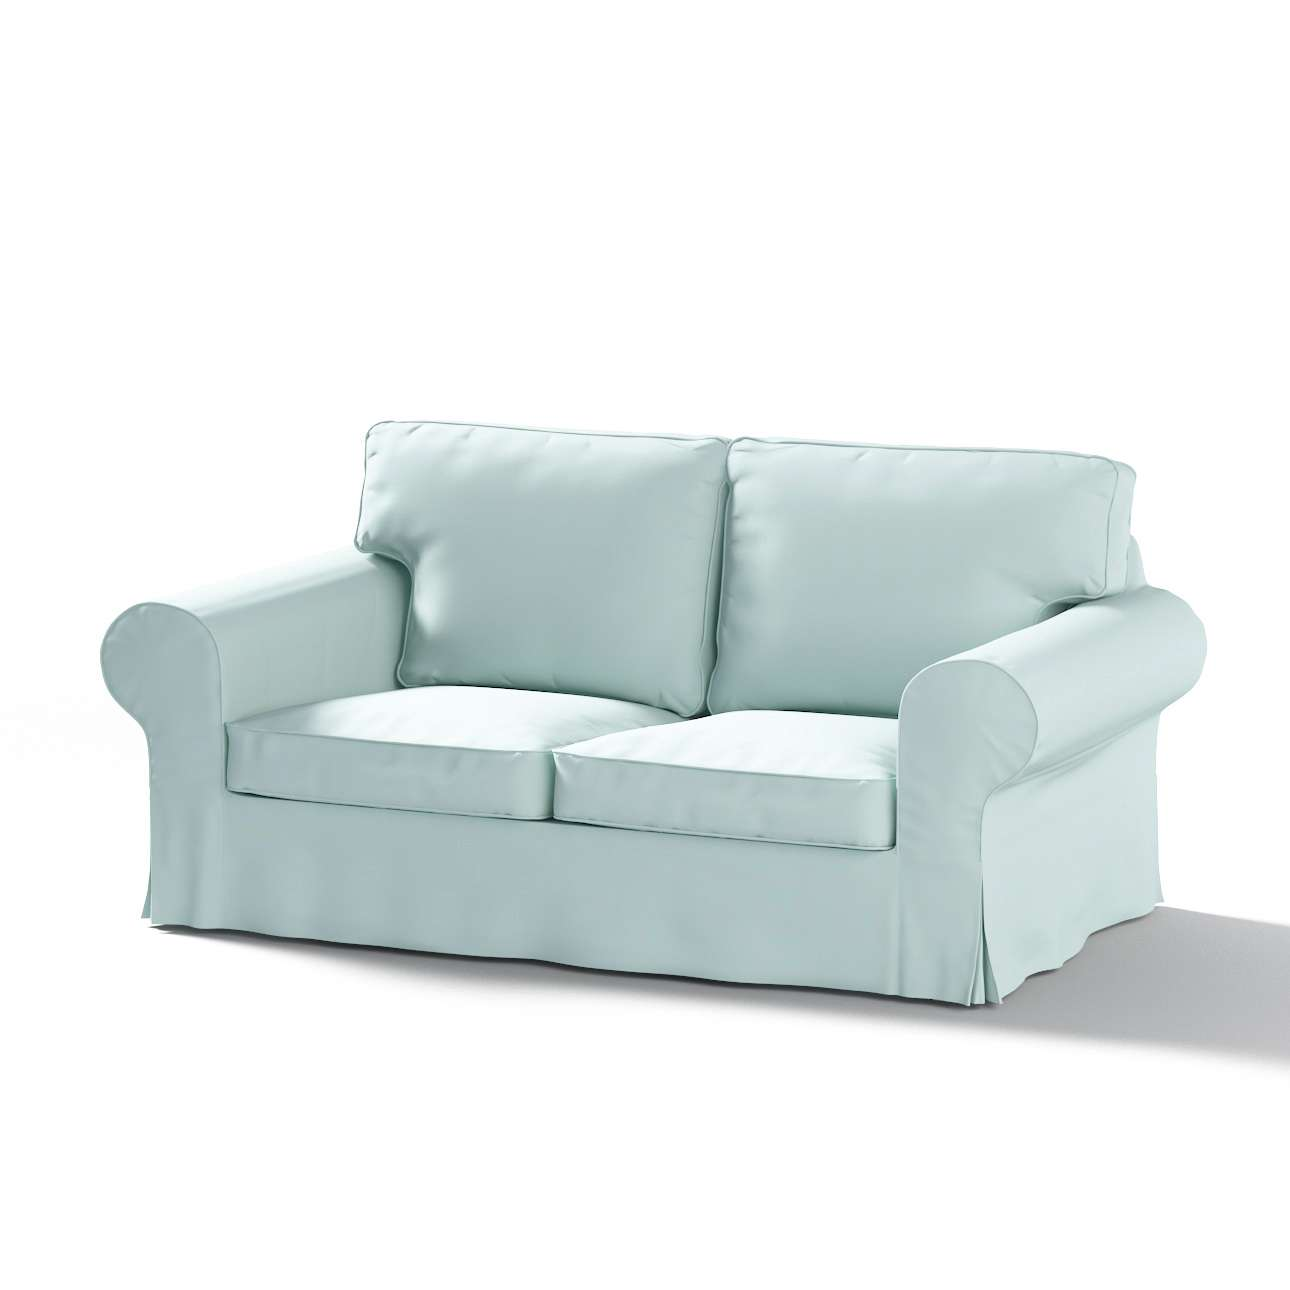 Ektorp 2-seater sofa cover in collection Panama Cotton, fabric: 702-10